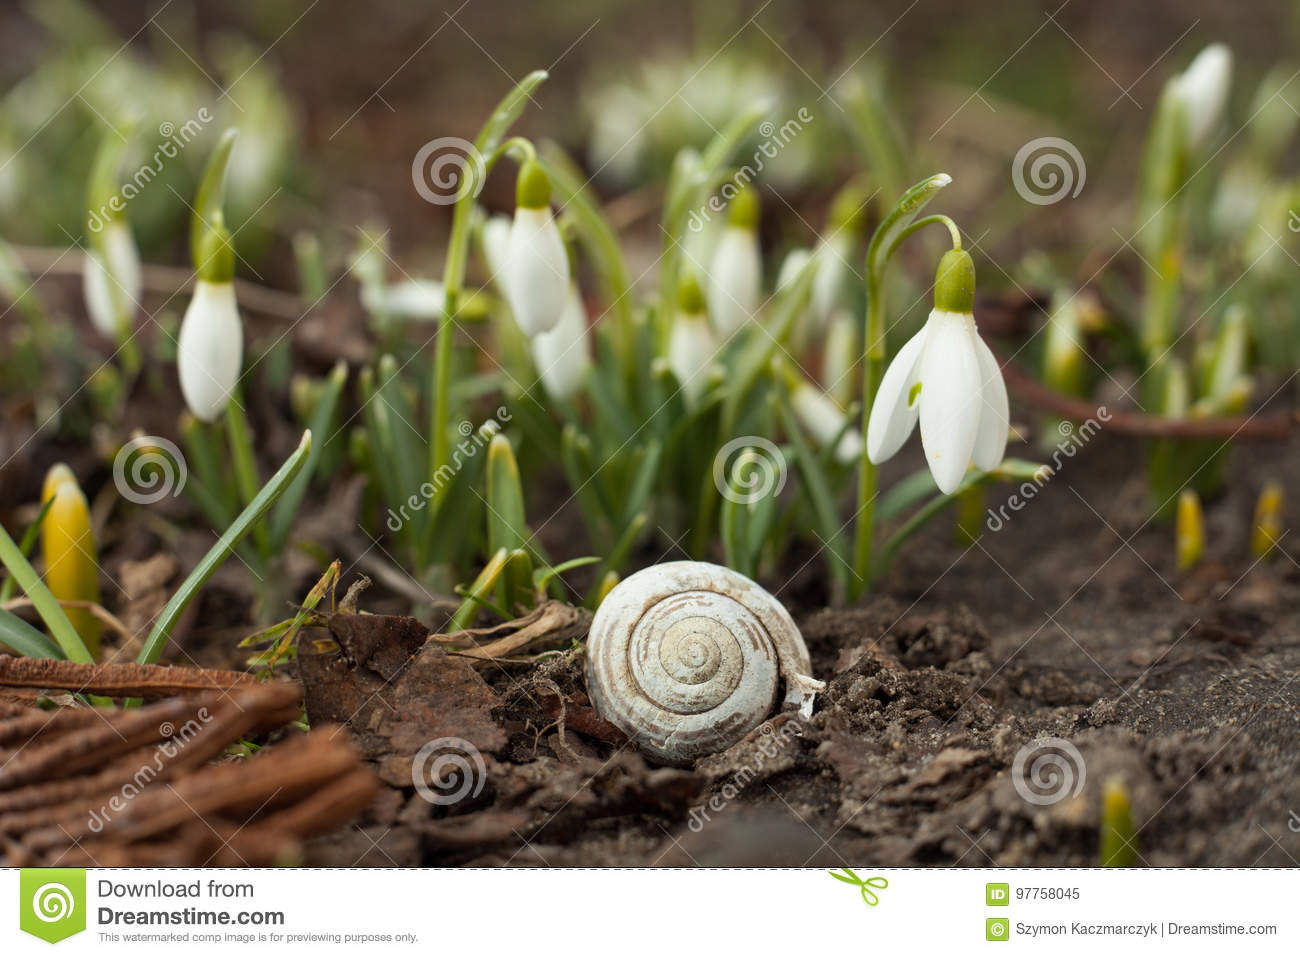 White snowdrop bell and empty snail shell stock image image of white snowdrop bell and empty snail shell mightylinksfo